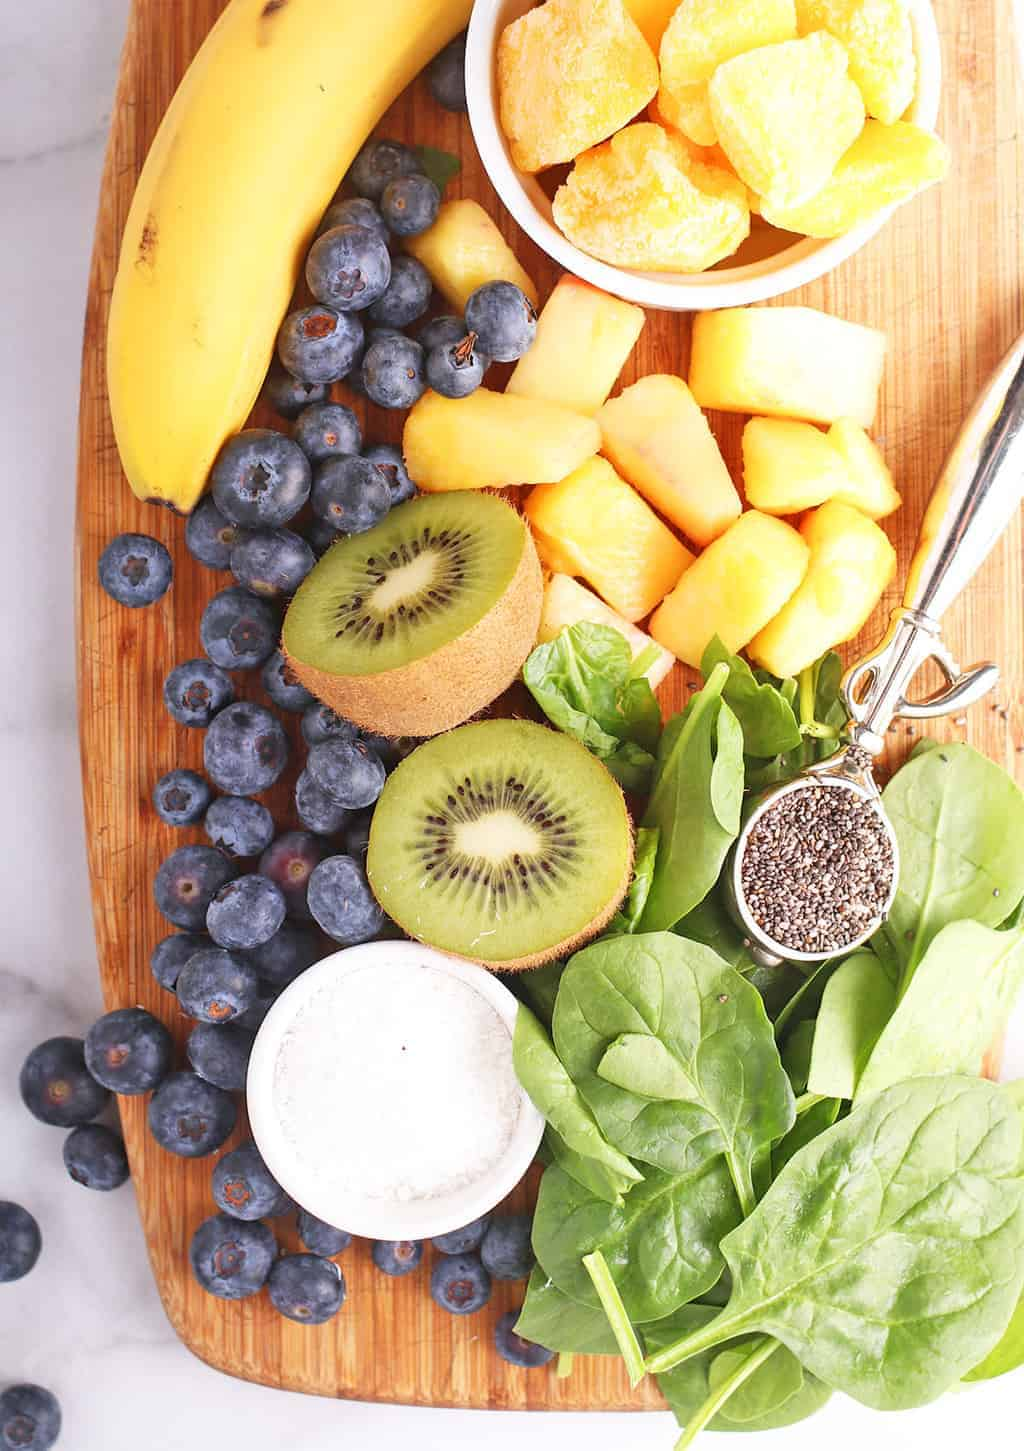 Blueberries, kiwi, banana, and spinach on a cutting board